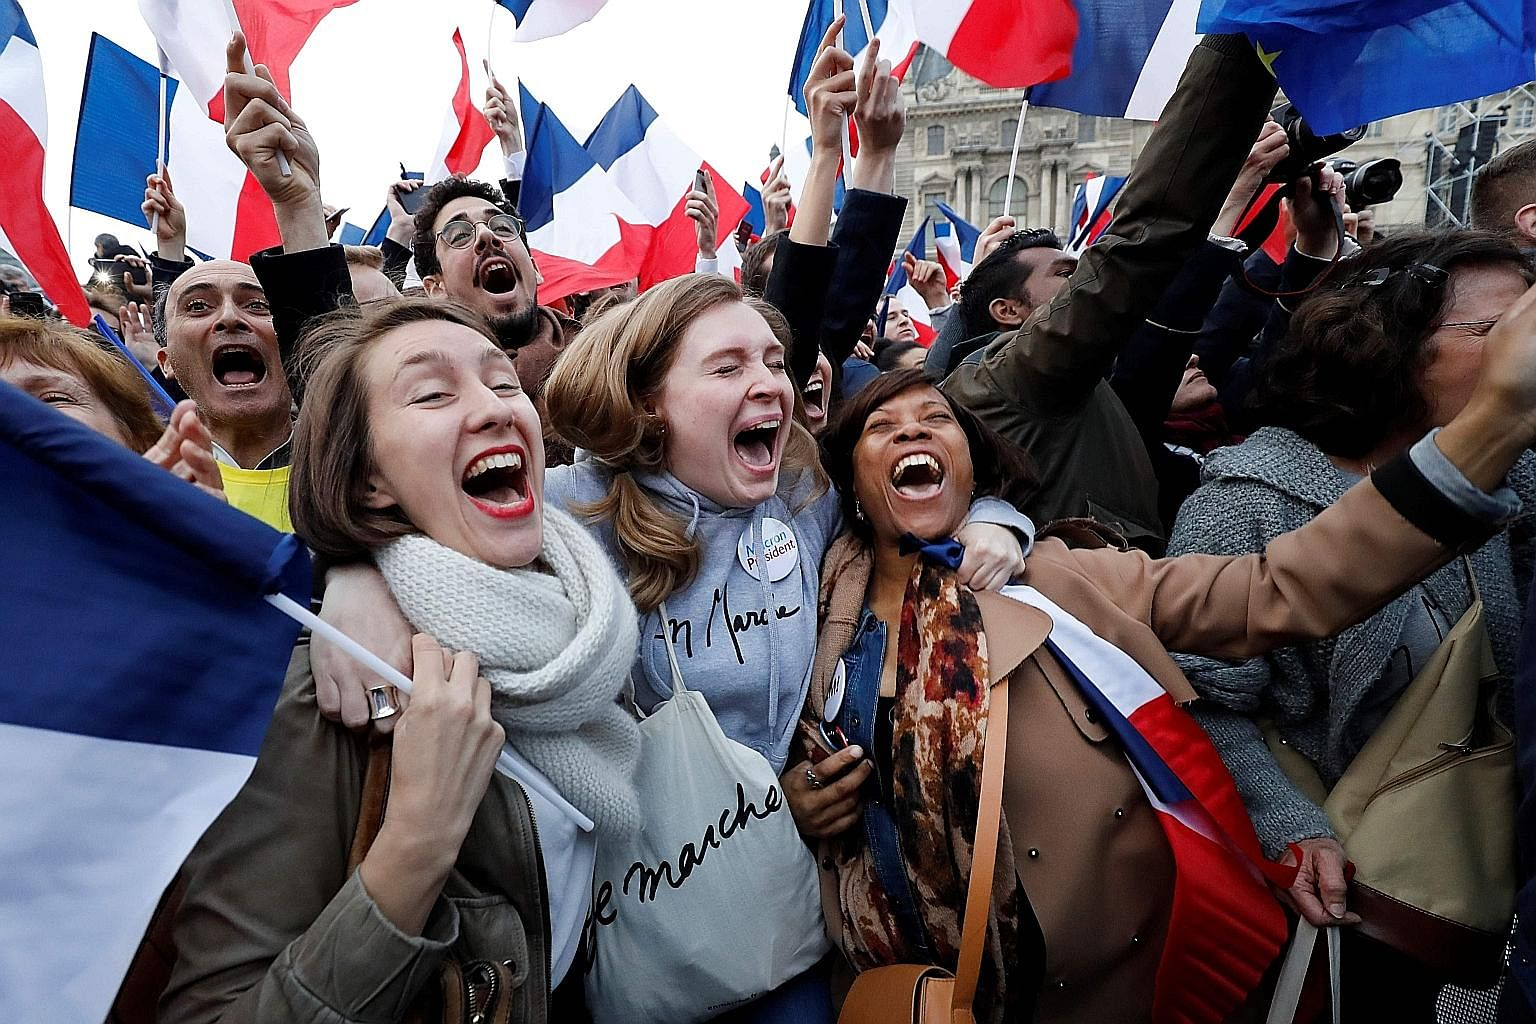 Ecstatic supporters cheering the victory of pro-European Emmanuel Macron in the French presidential election at the Louvre Museum on Sunday. At least Europe is not going down the protectionist path that President Donald Trump is forcing the United St